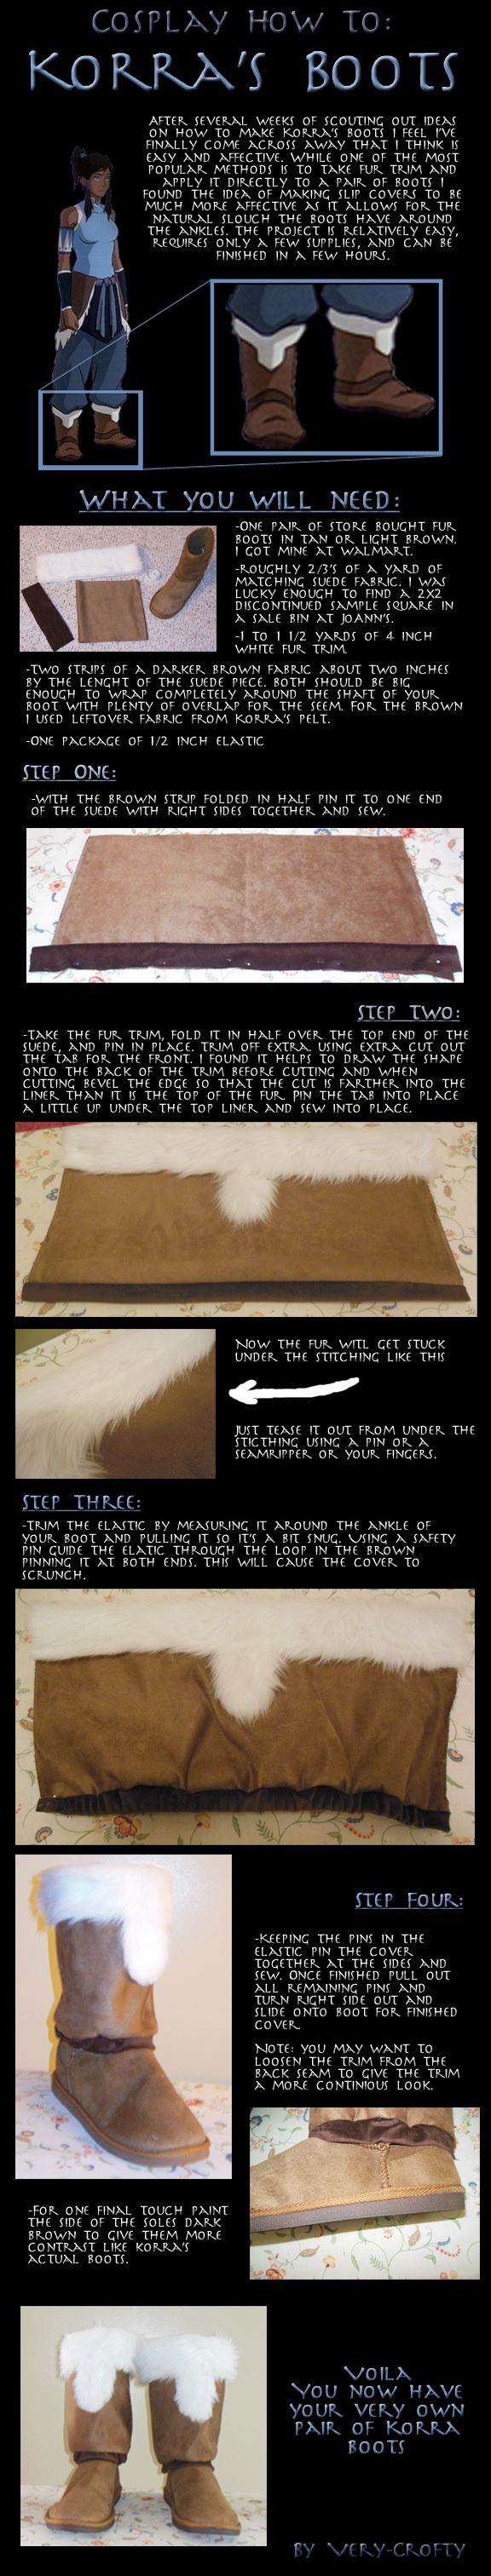 Simple easy way to make Korra's boots. Or good for winter elf boots too! ;)